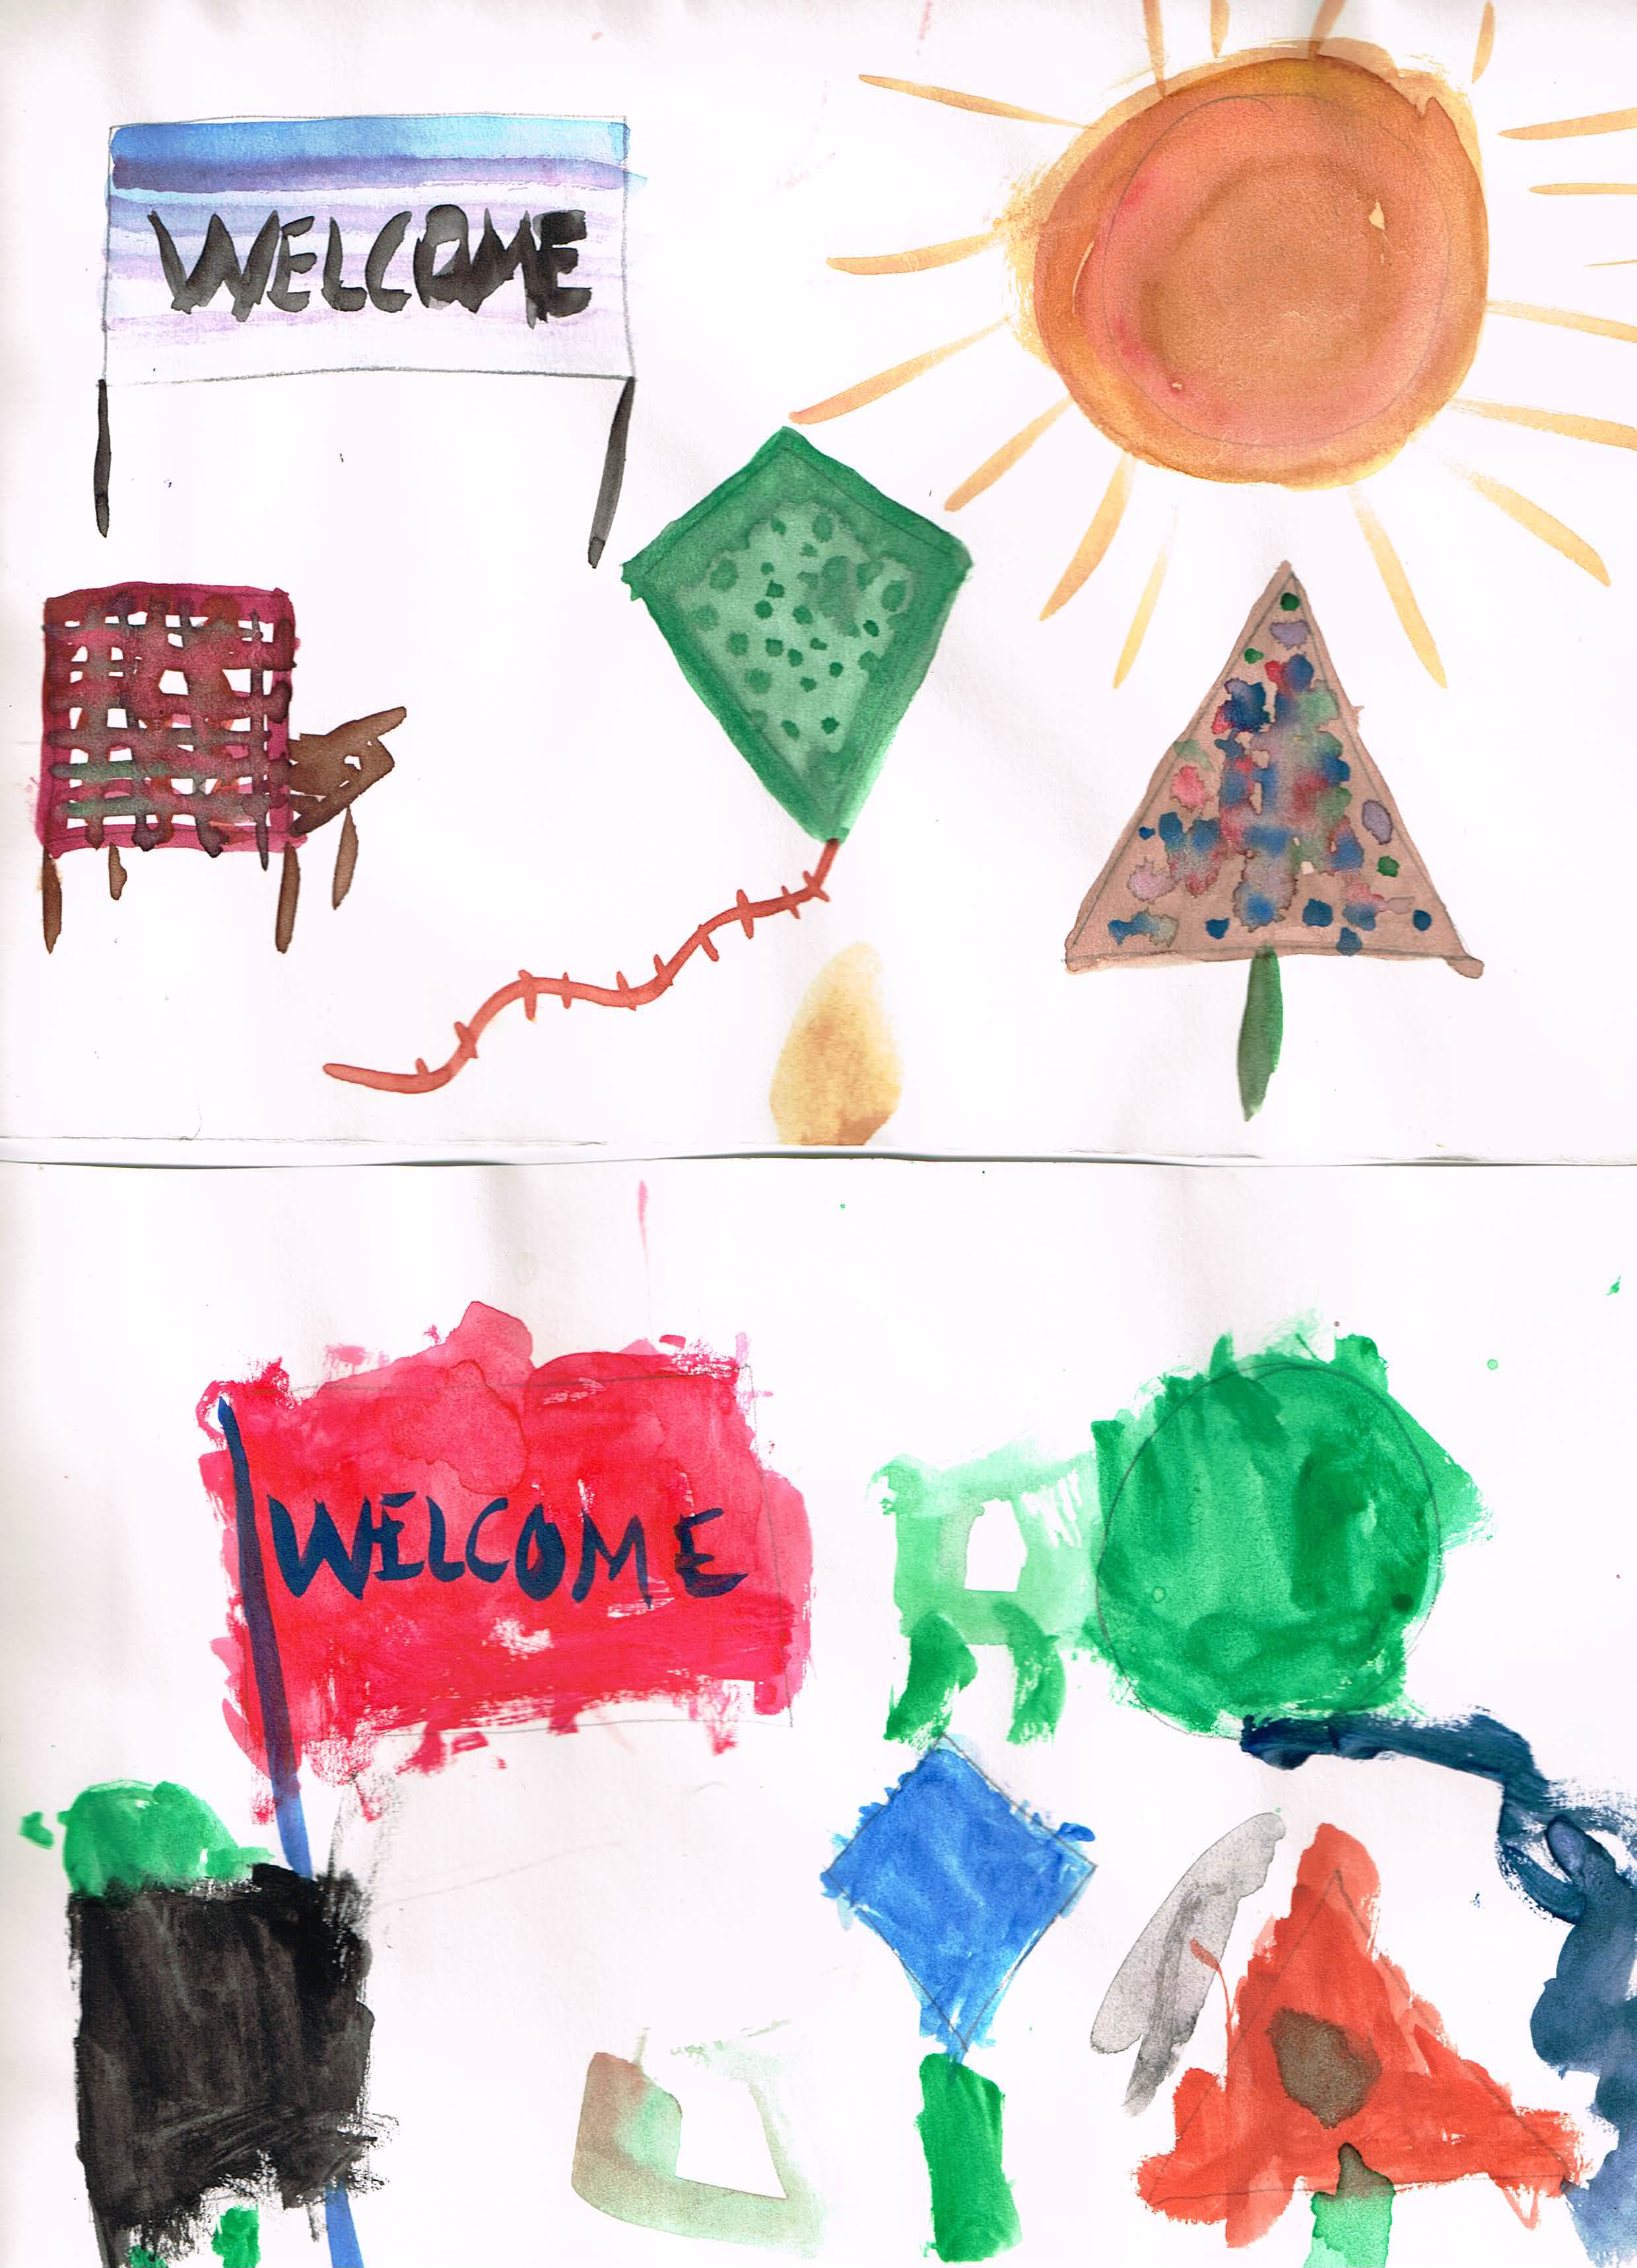 Here was mine and my son's paintings. He did a pretty good job!  Top: Rectangle= Sign, Circle= Sun, Square= Chair, Kite=Kite, Triangle= Christmas tree  Bottom: Rectangle= Flag, Circle= Balloon, Square= Chair, Kite= Sign, Triangle= Tree